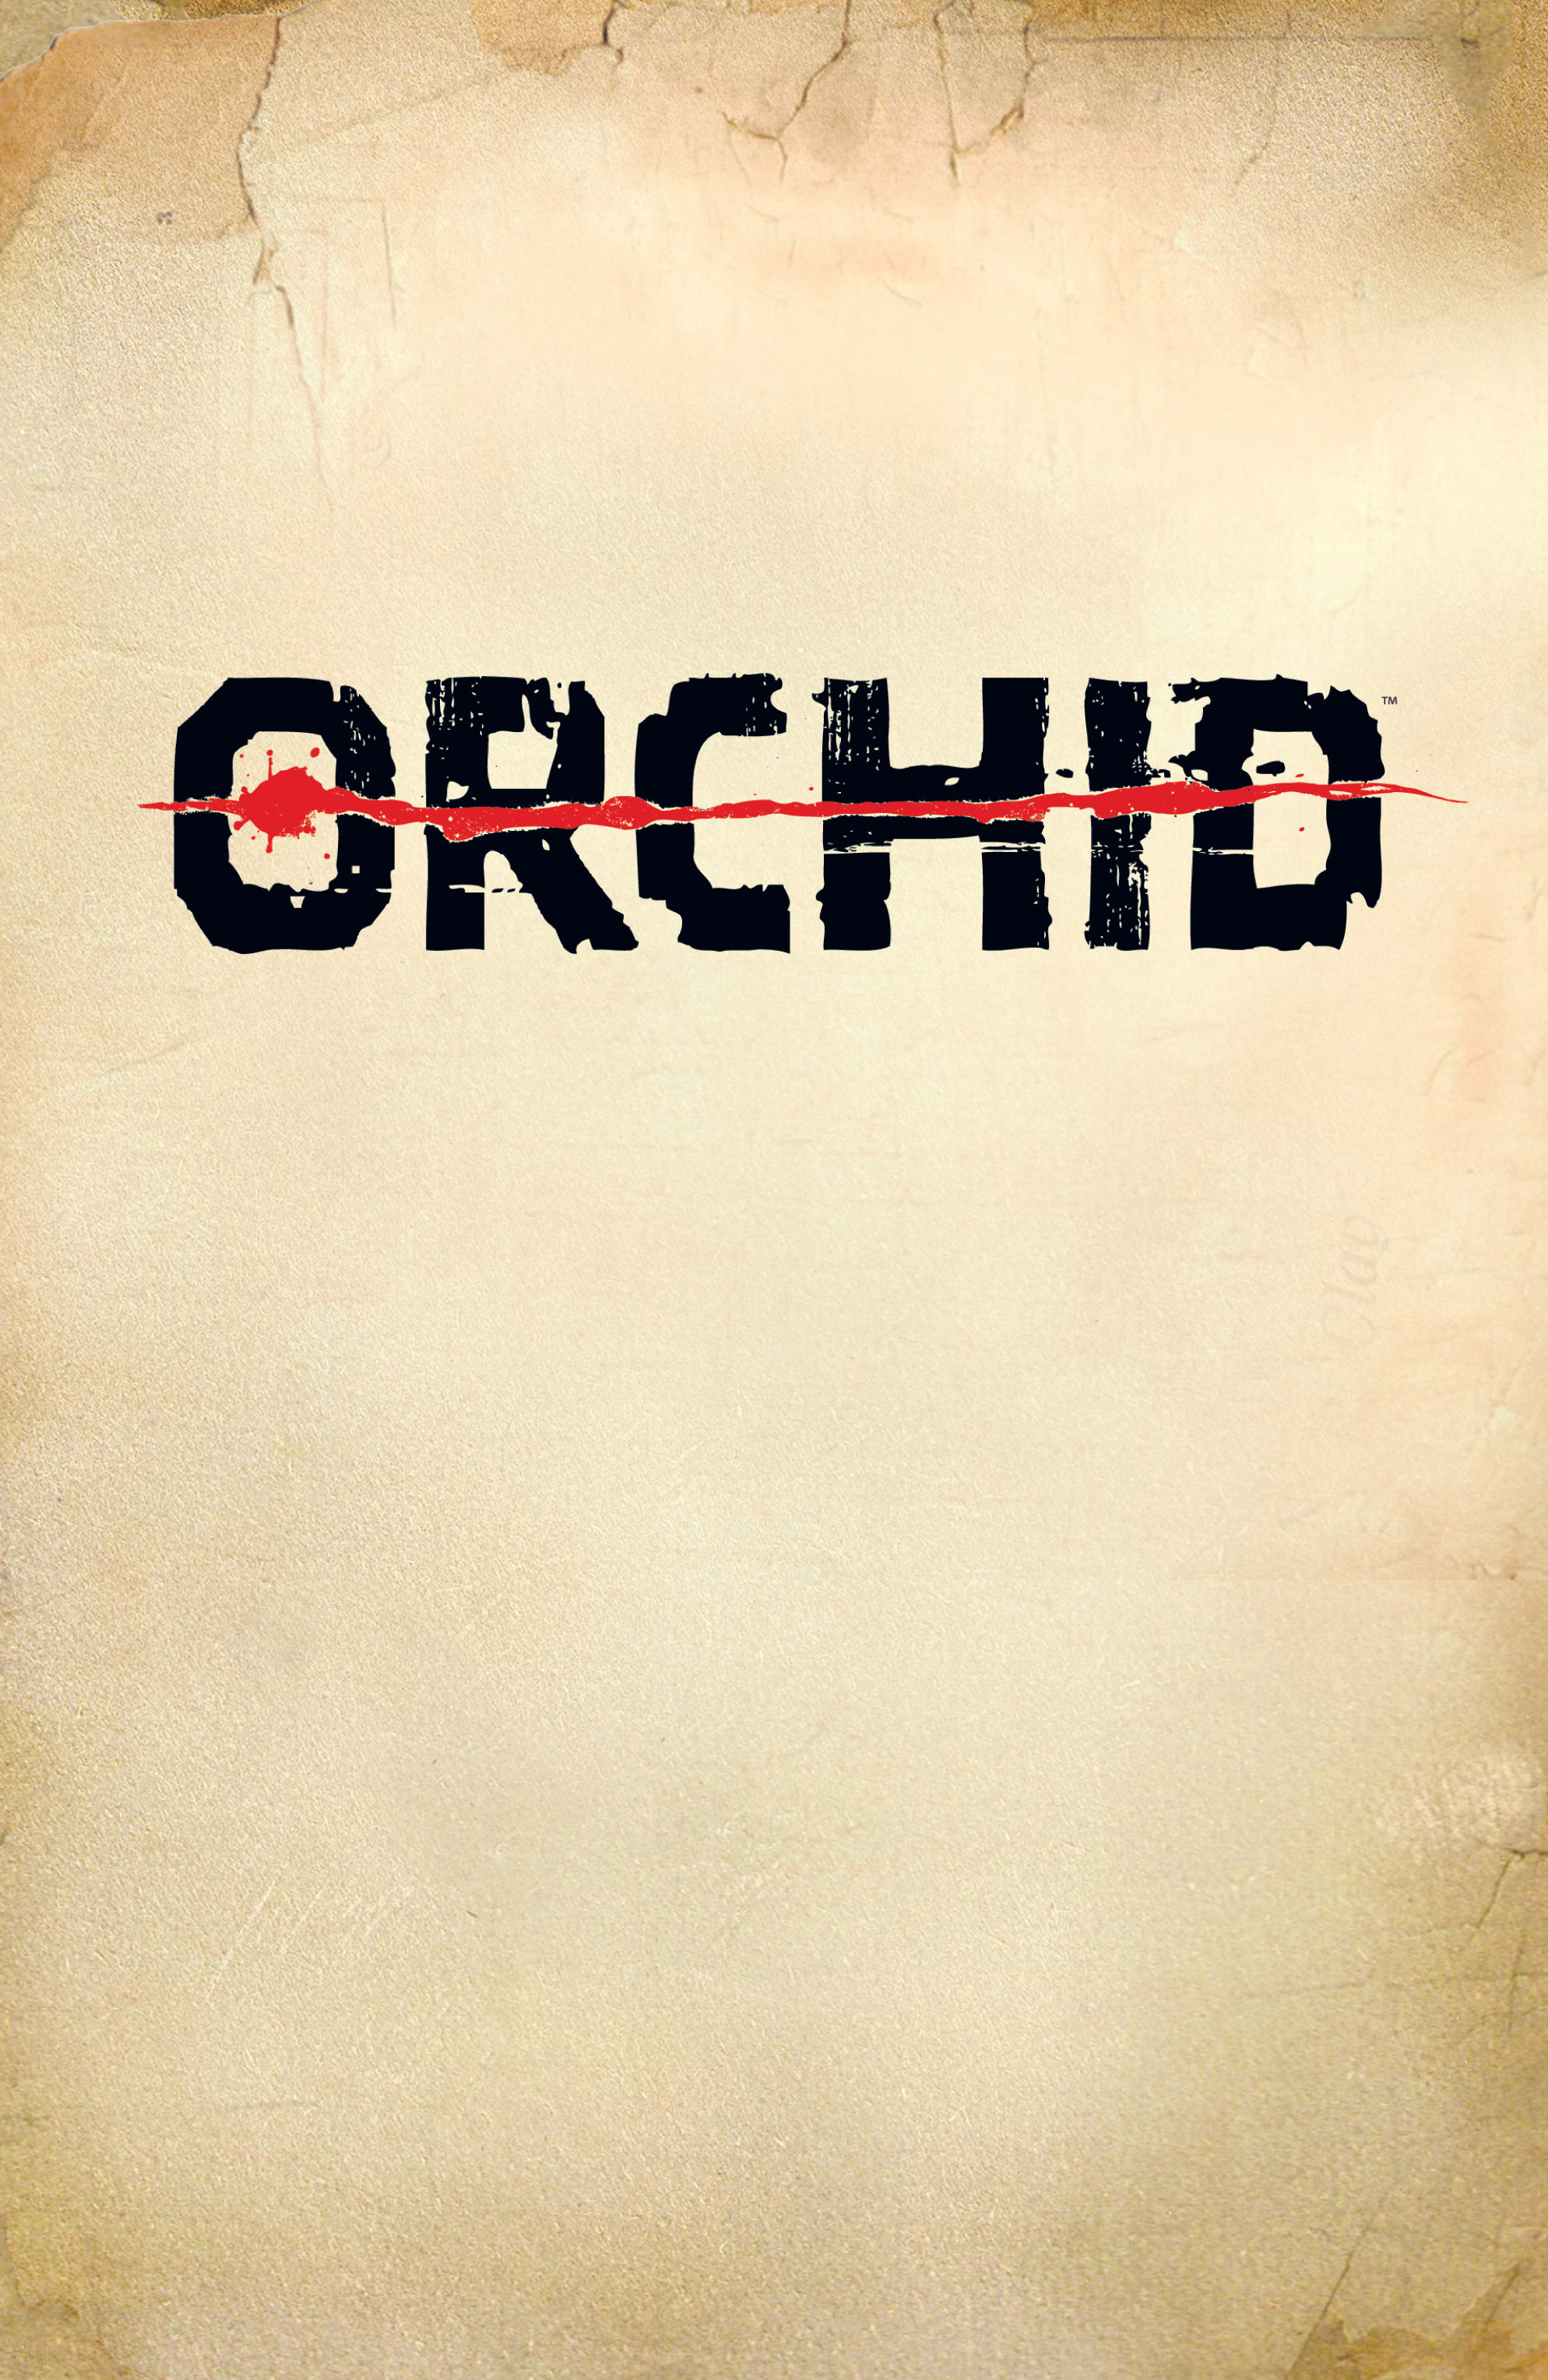 Read online Orchid comic -  Issue # TPB 1 - 2